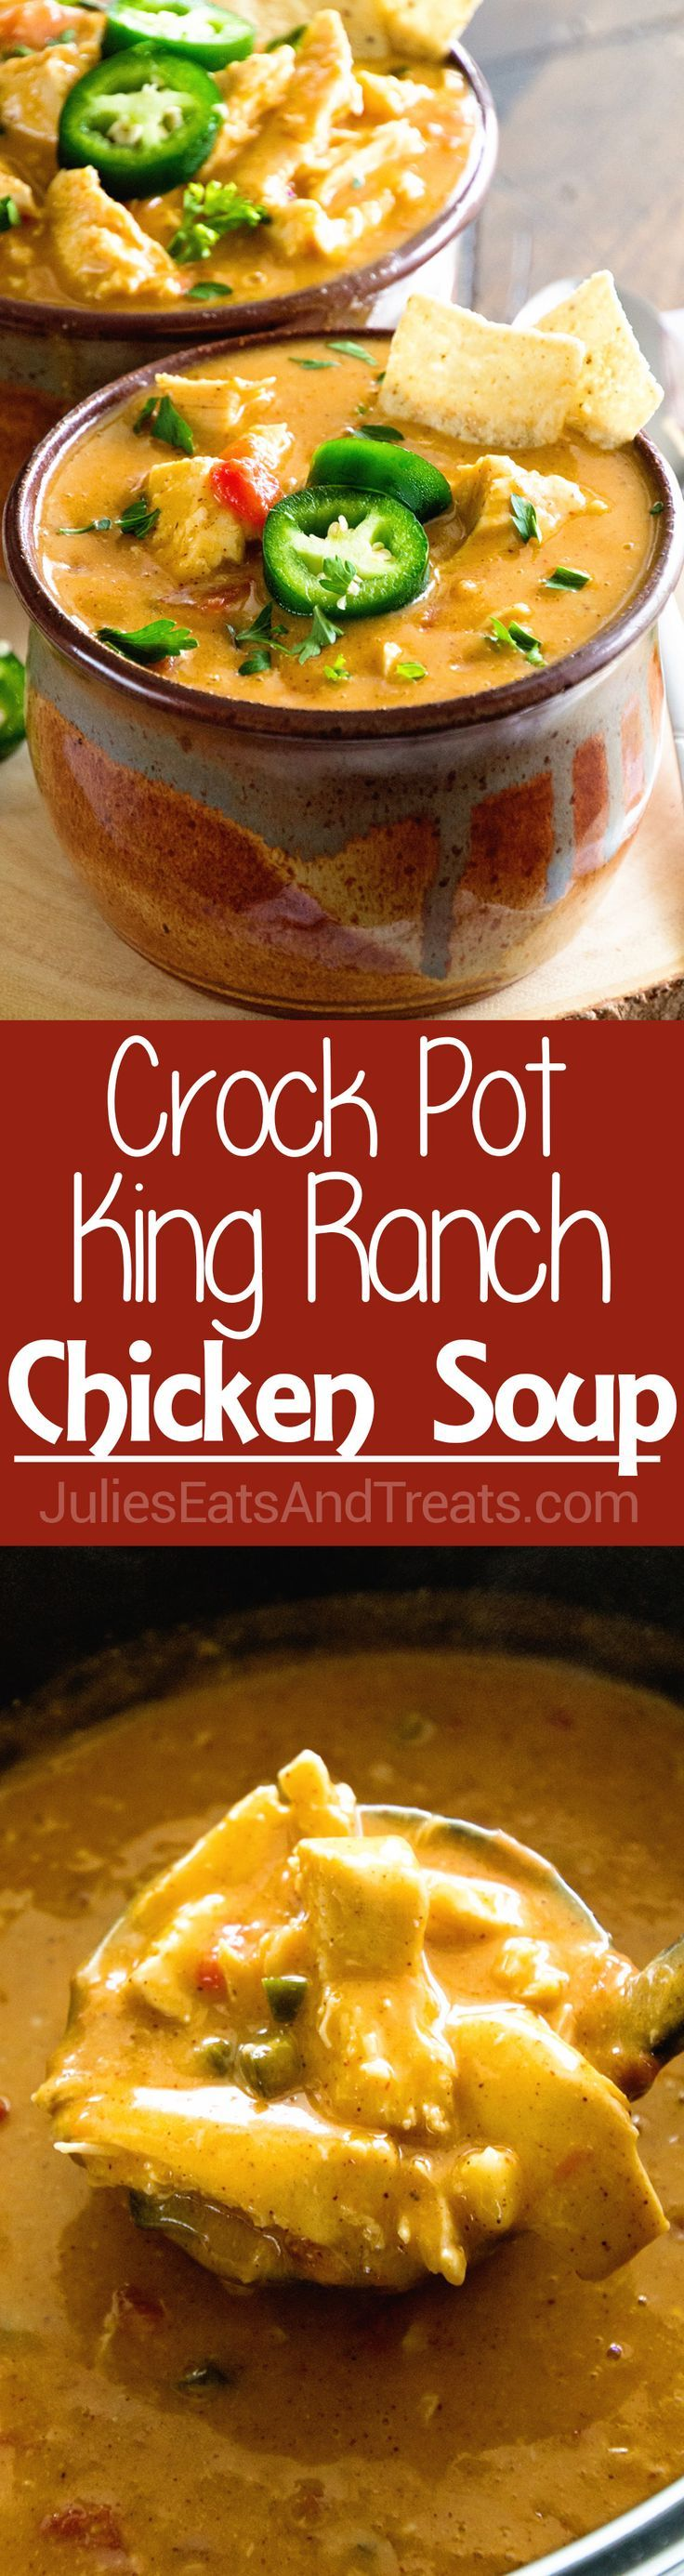 Crock Pot King Ranch Chicken Soup ~ Your Favorite King Ranch Chicken Casserole Flavor Turned into a Comforting Soup Made in Your Slow Cooker!